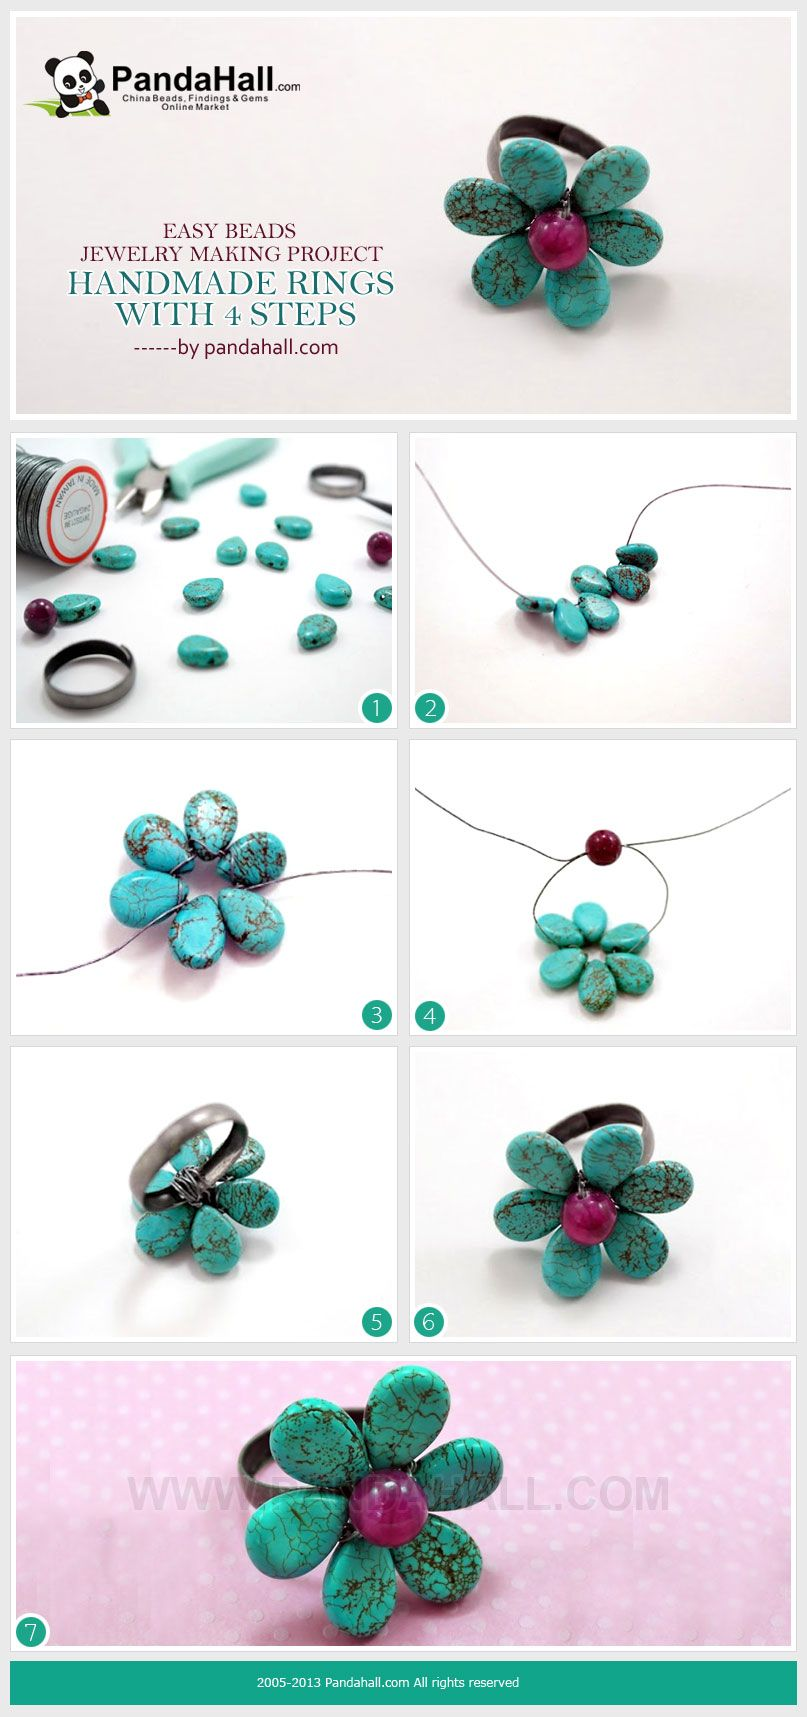 easy beads jewelry making project-handmade rings in 4 steps from